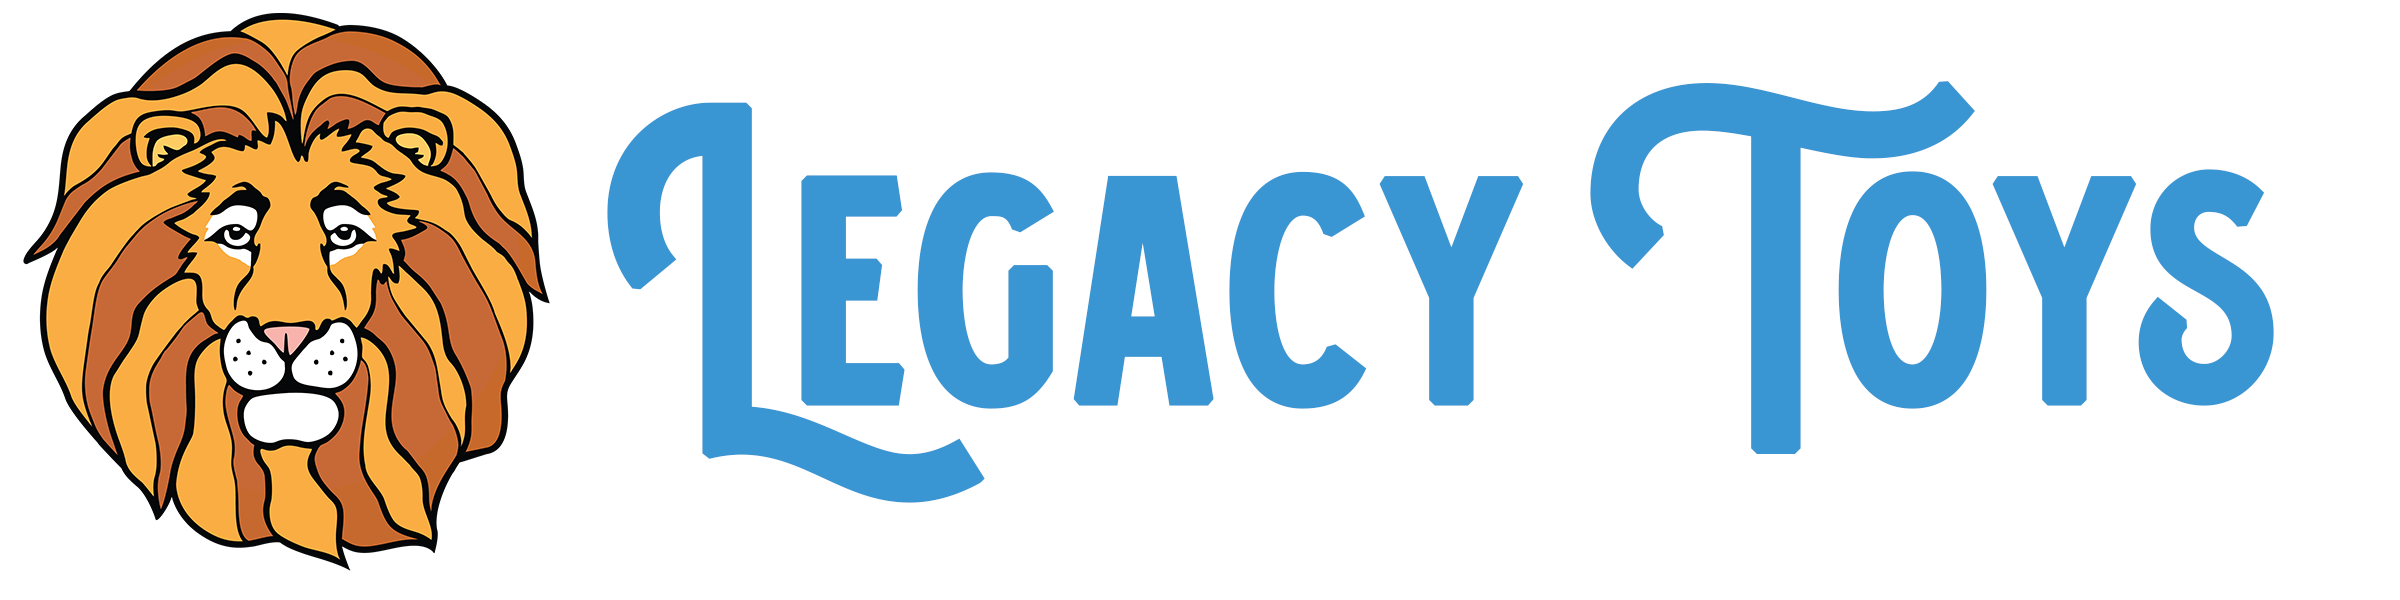 Legacy Toys Help Center home page